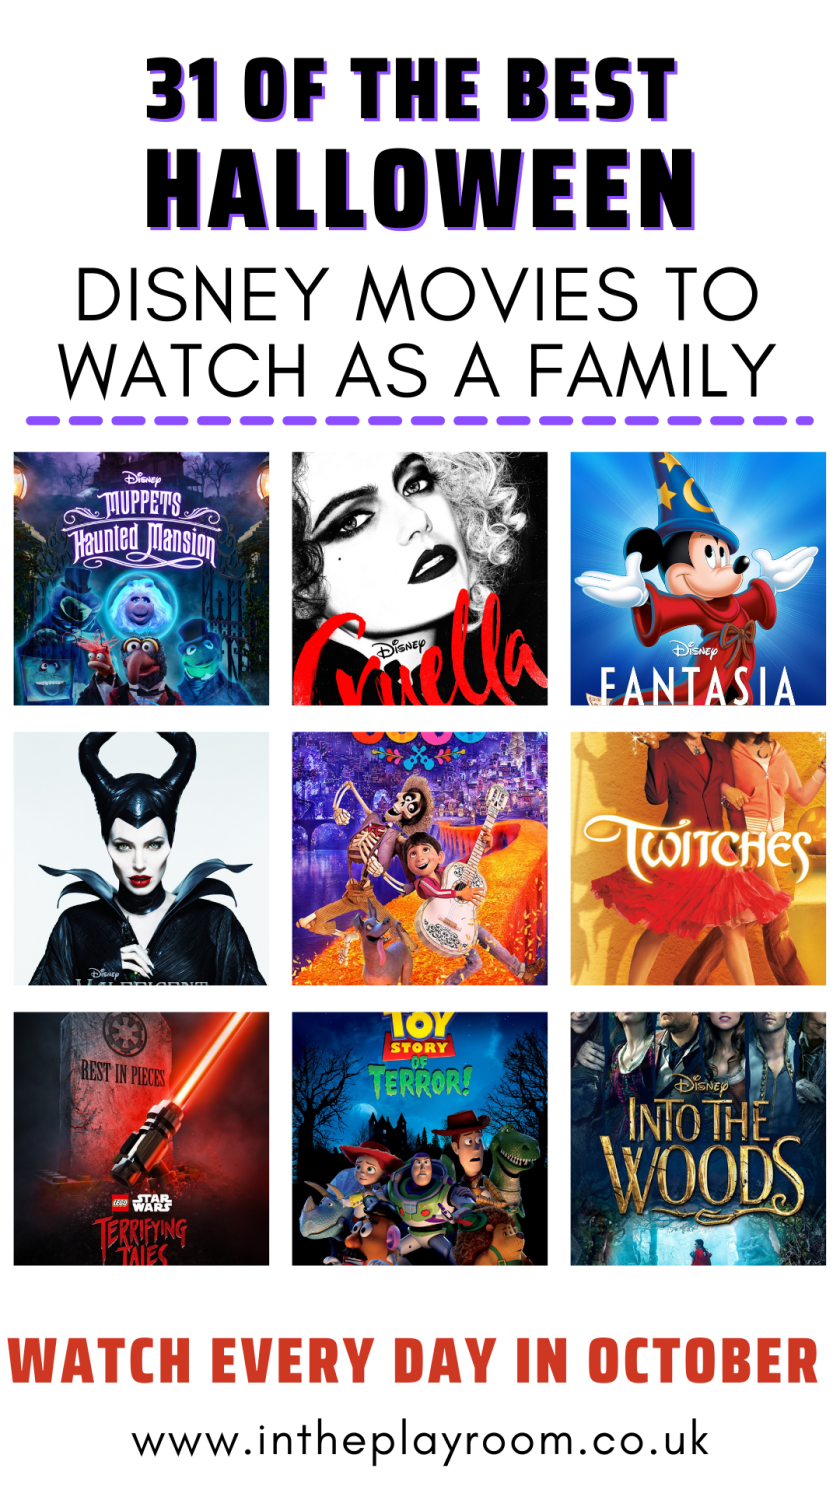 31 of the best Halloween Disney Movies to Watch as a family every day throughout October